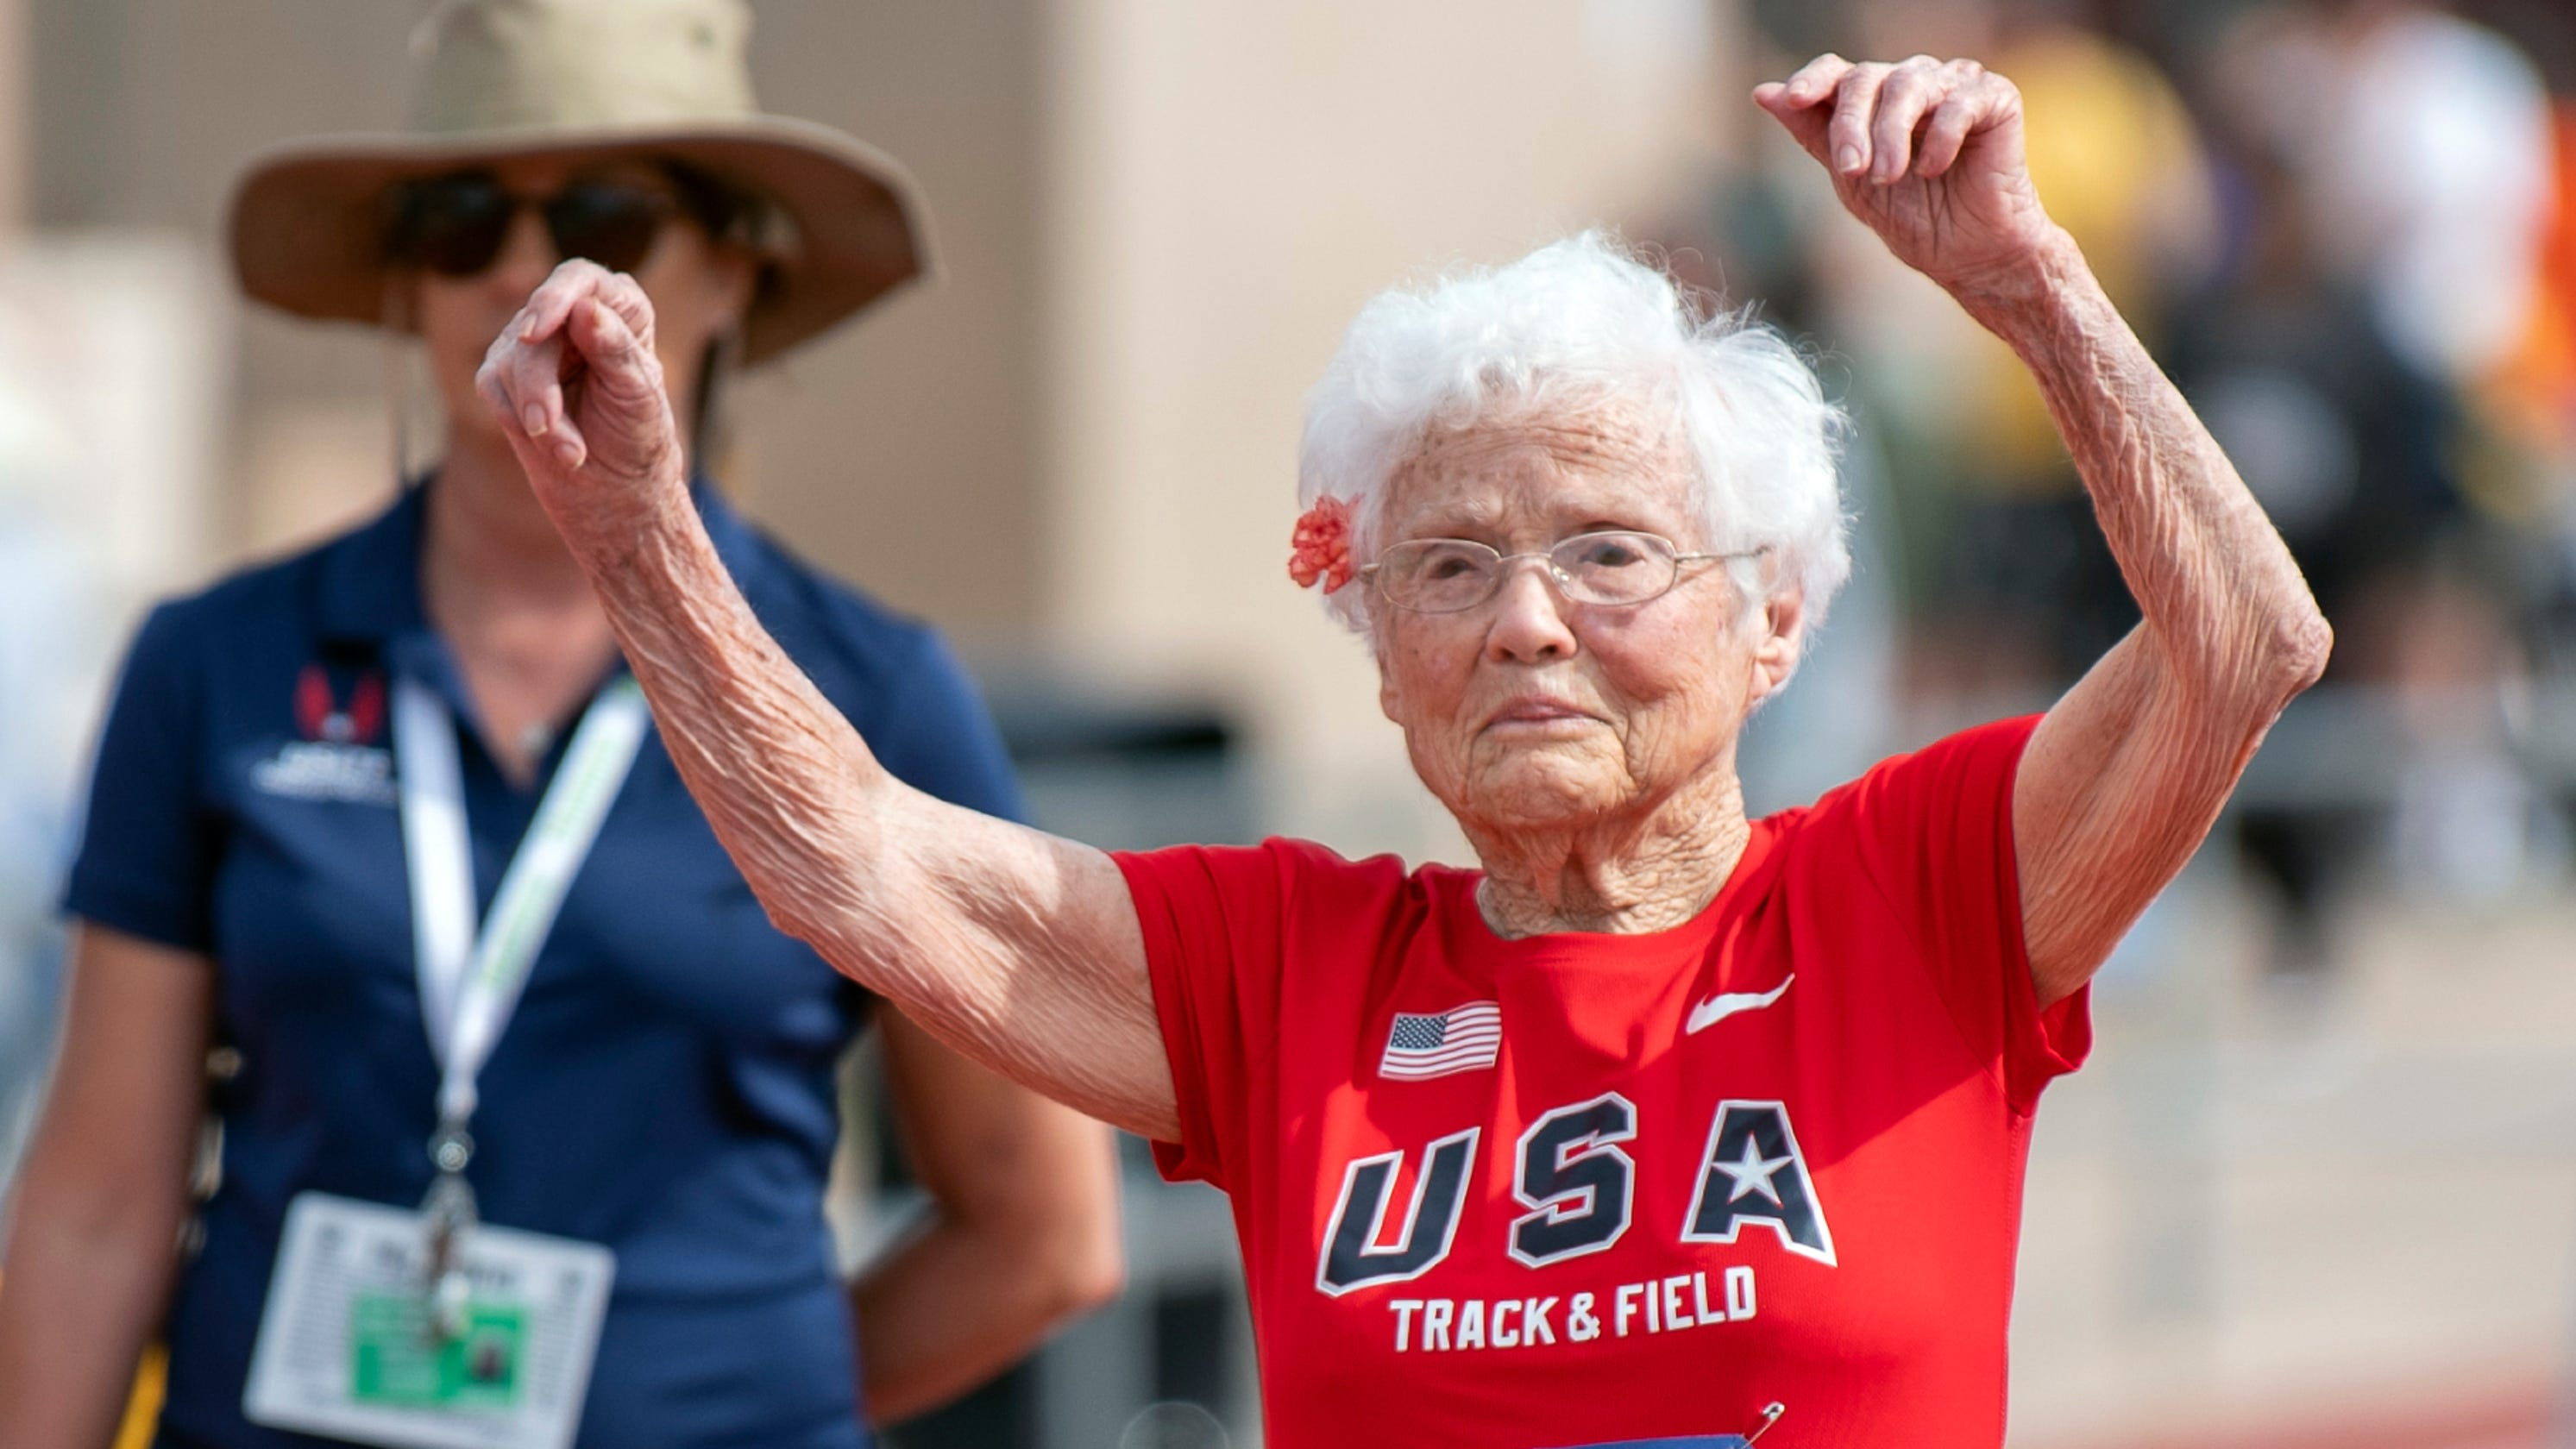 Julia Hawkins, 103-year-old sprinter, makes her mark on the